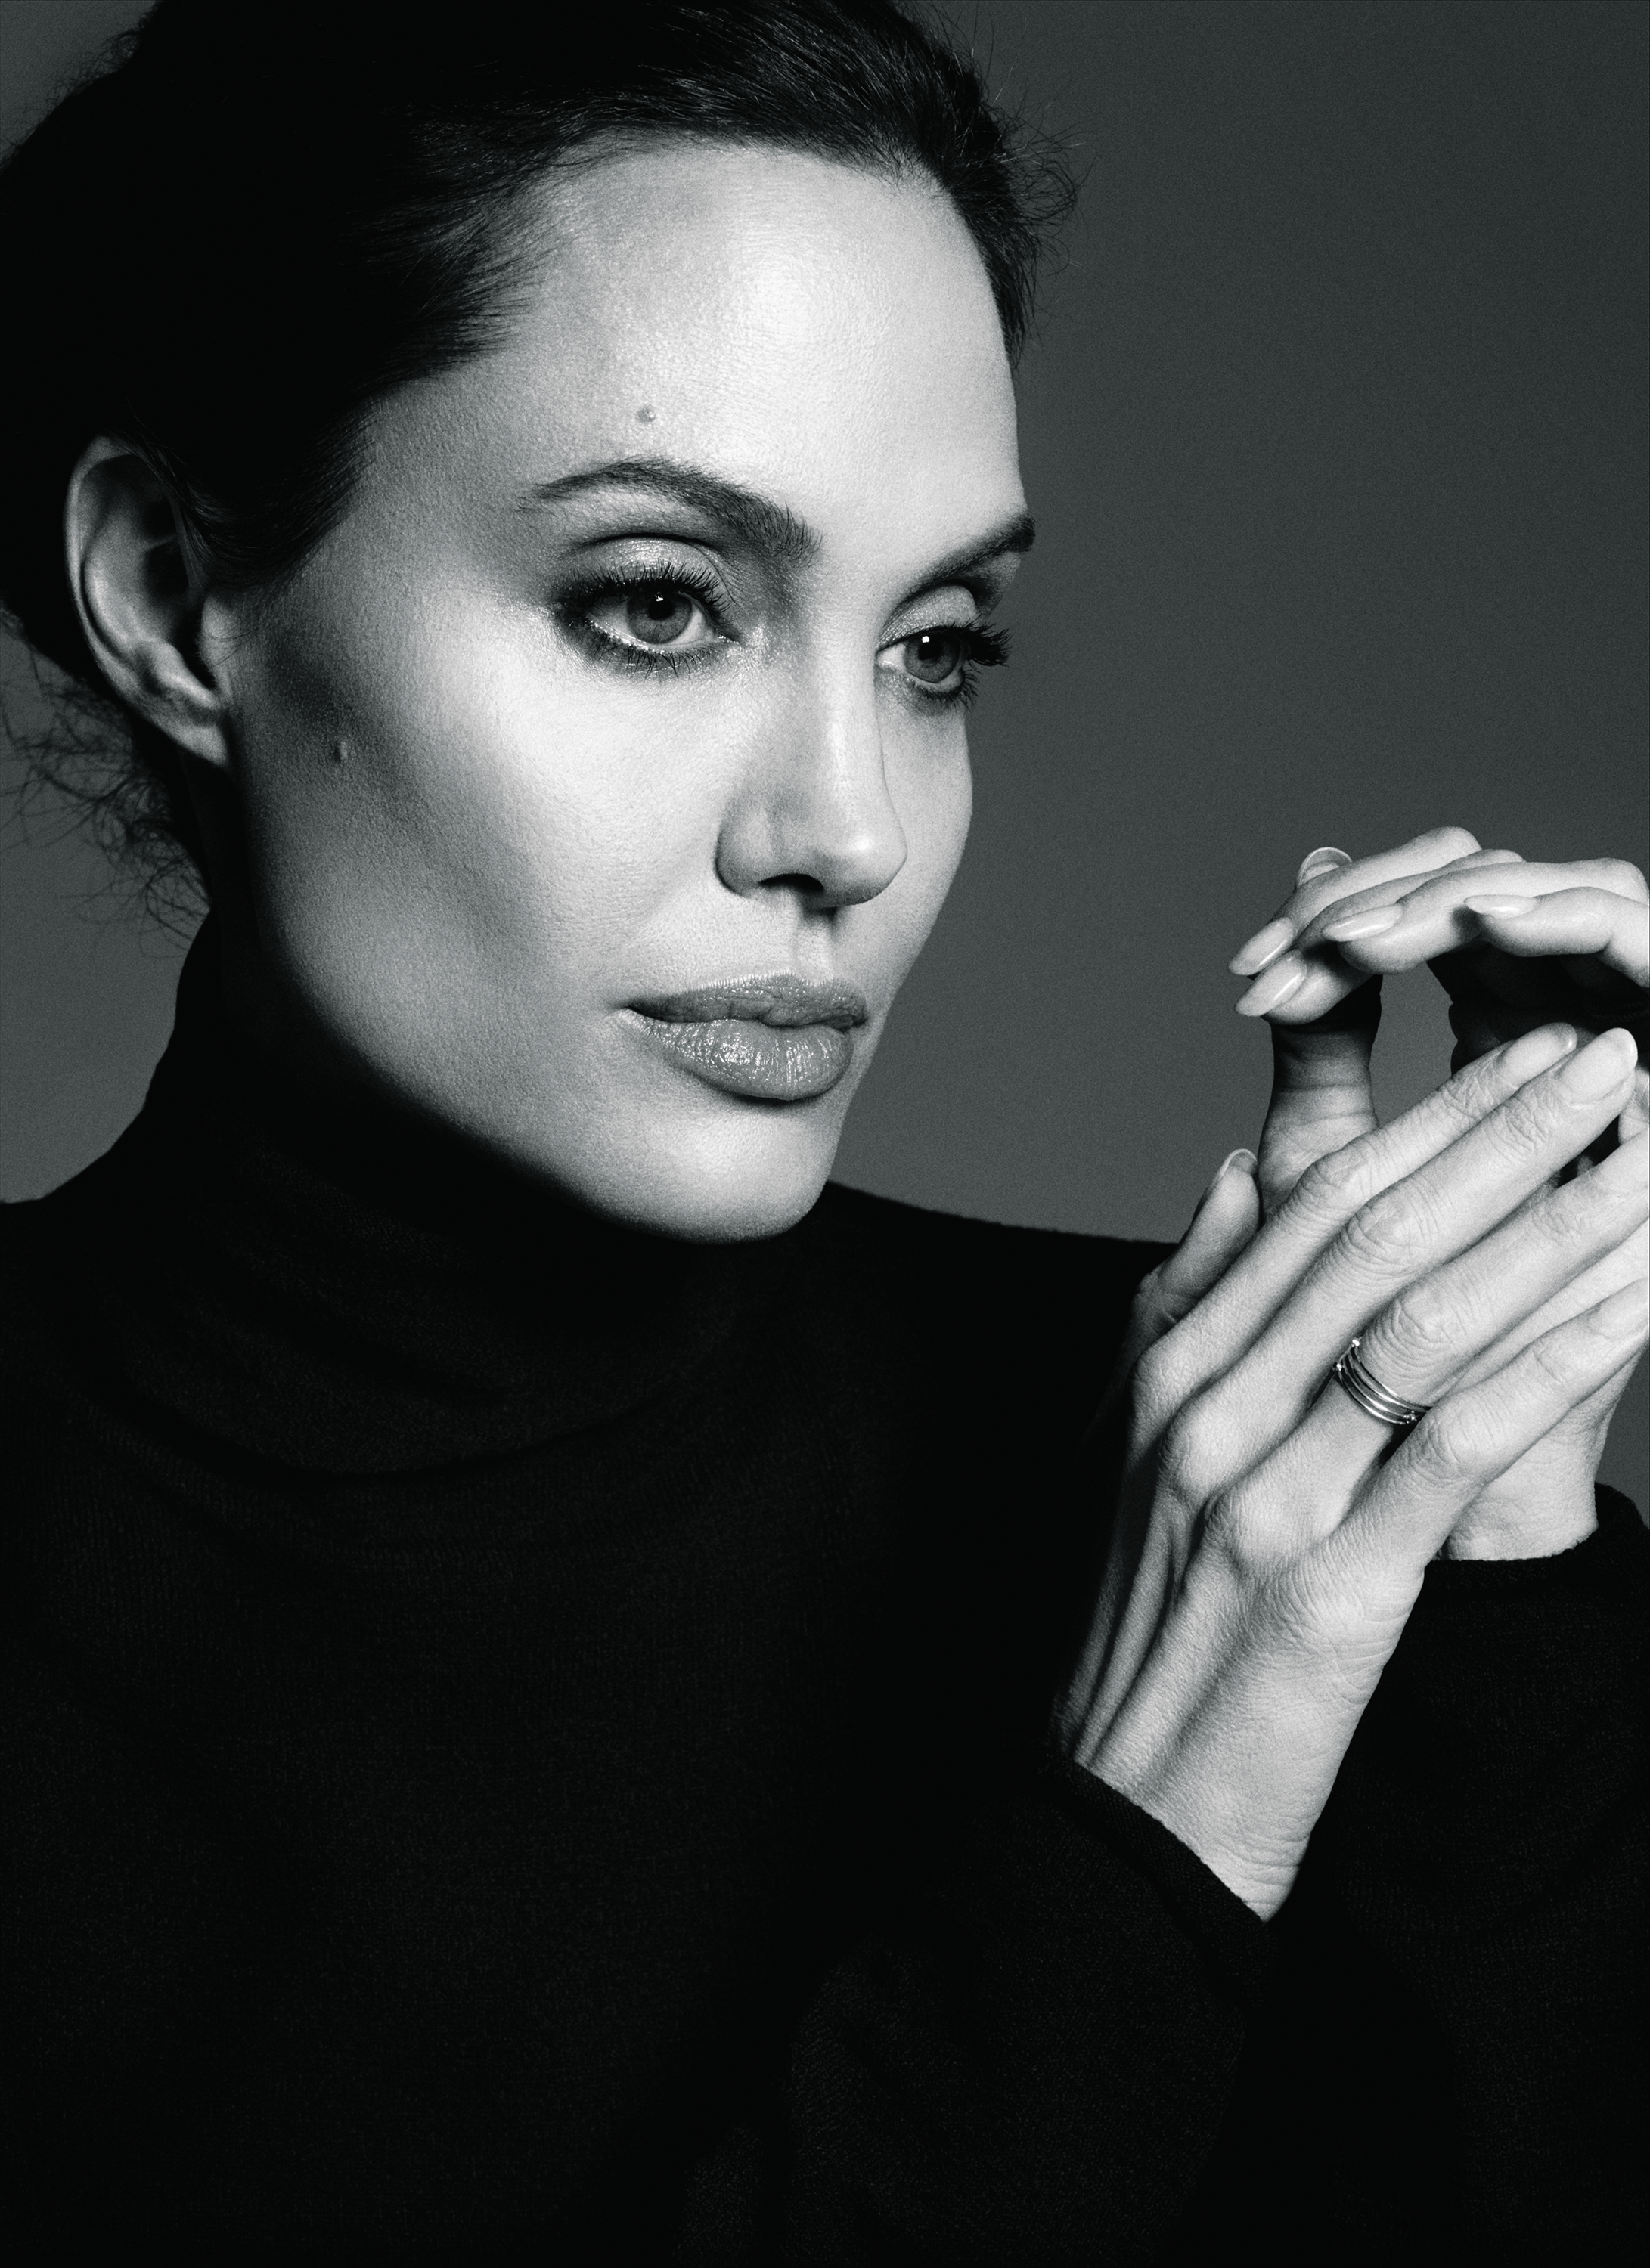 The biggest star in her own movie. Angelina Jolie, photographed in Los Angeles. Unbroken is the second film she has directed.